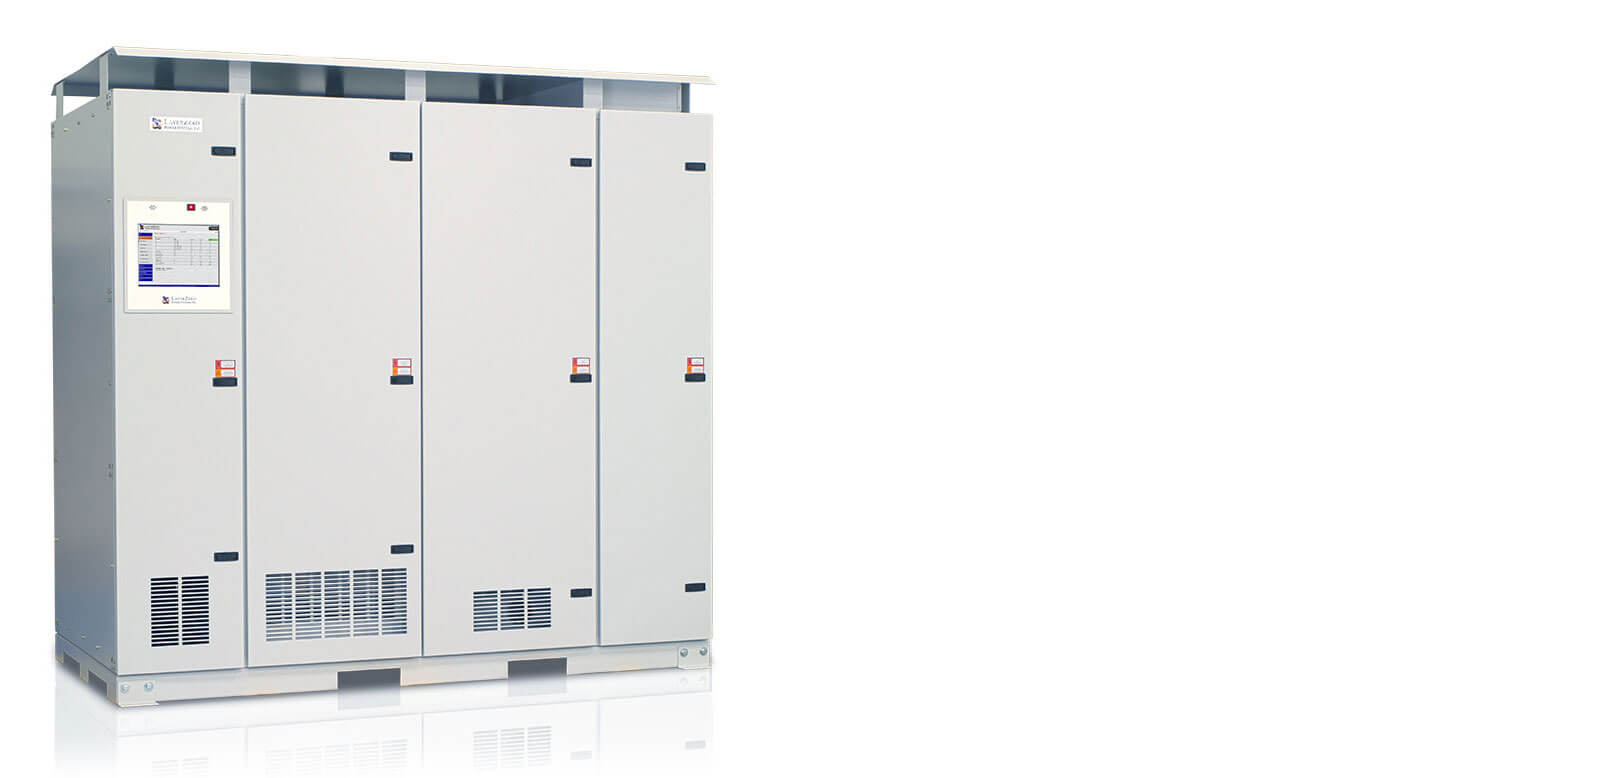 1200 A-1600A Series 70: eSTS Static Transfer Switch